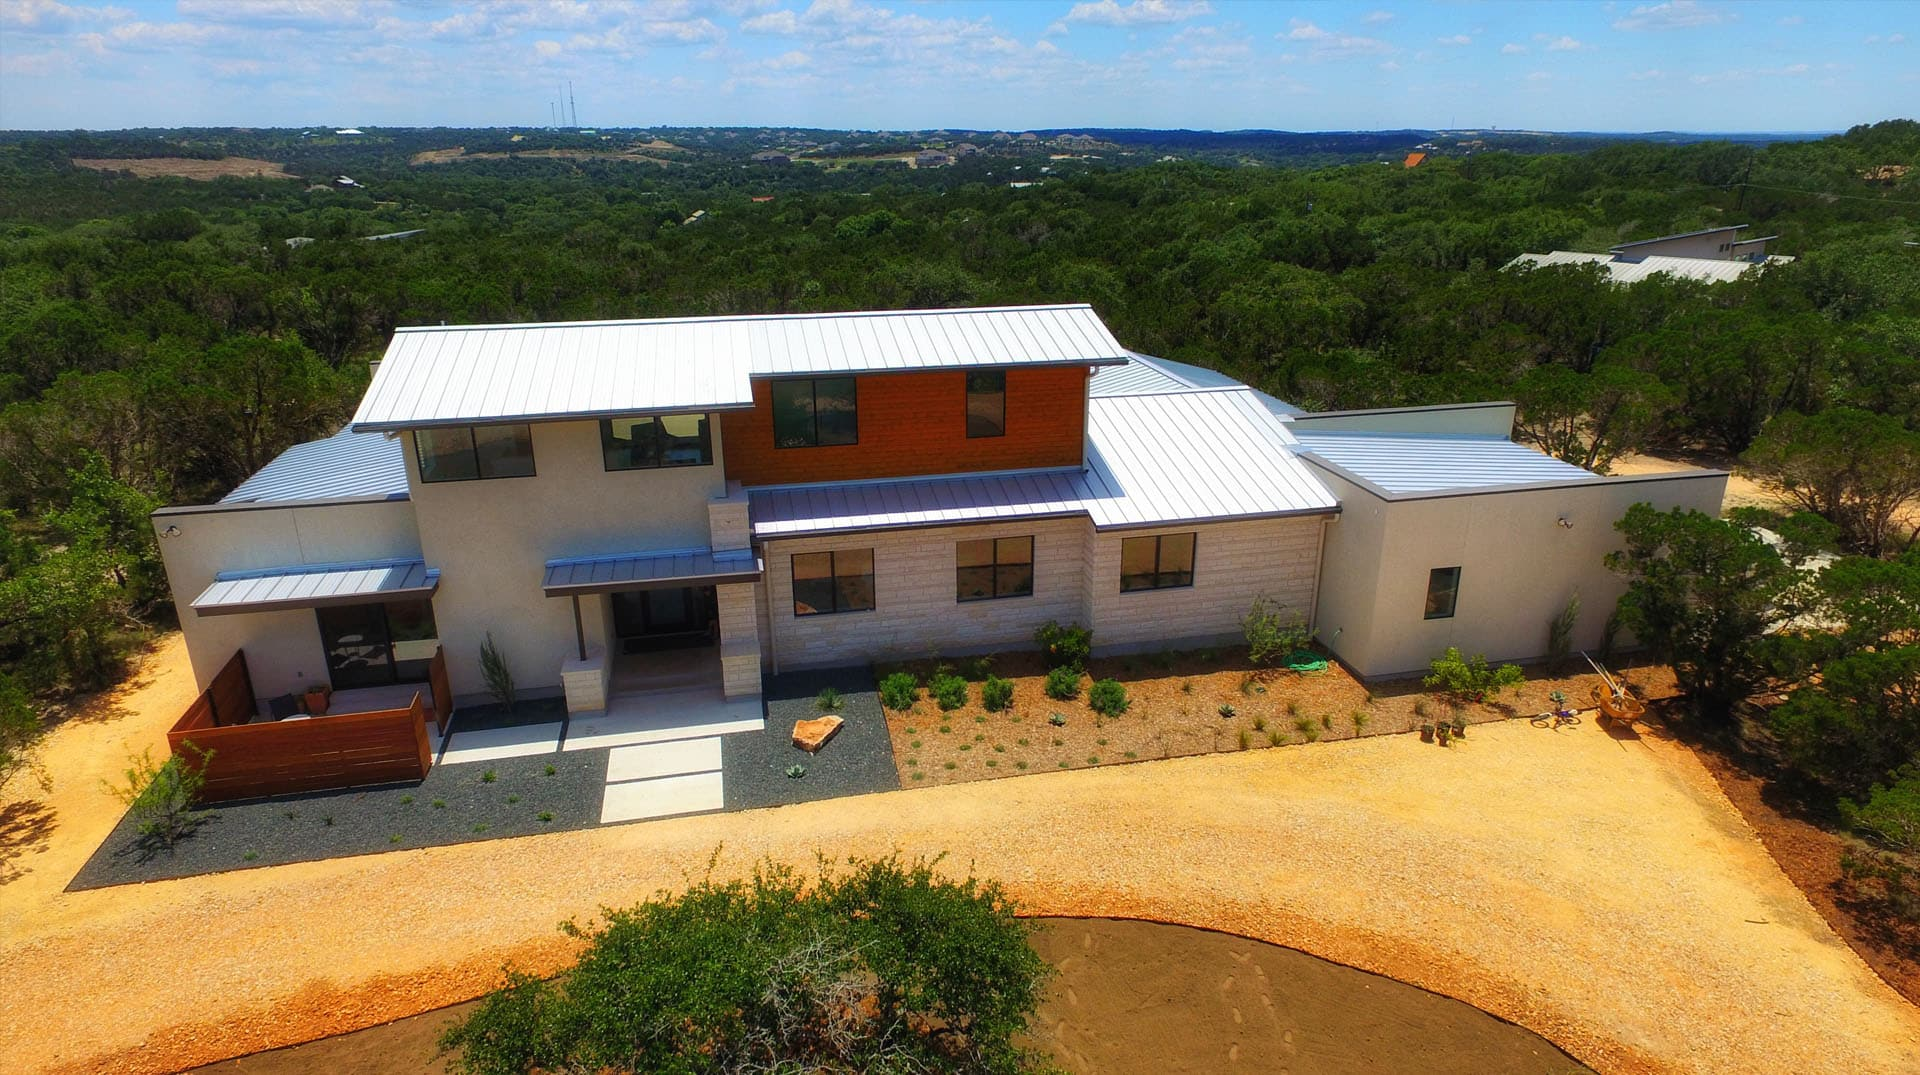 Cost to build a new house in austin - Cost To Build A New House In Austin 50